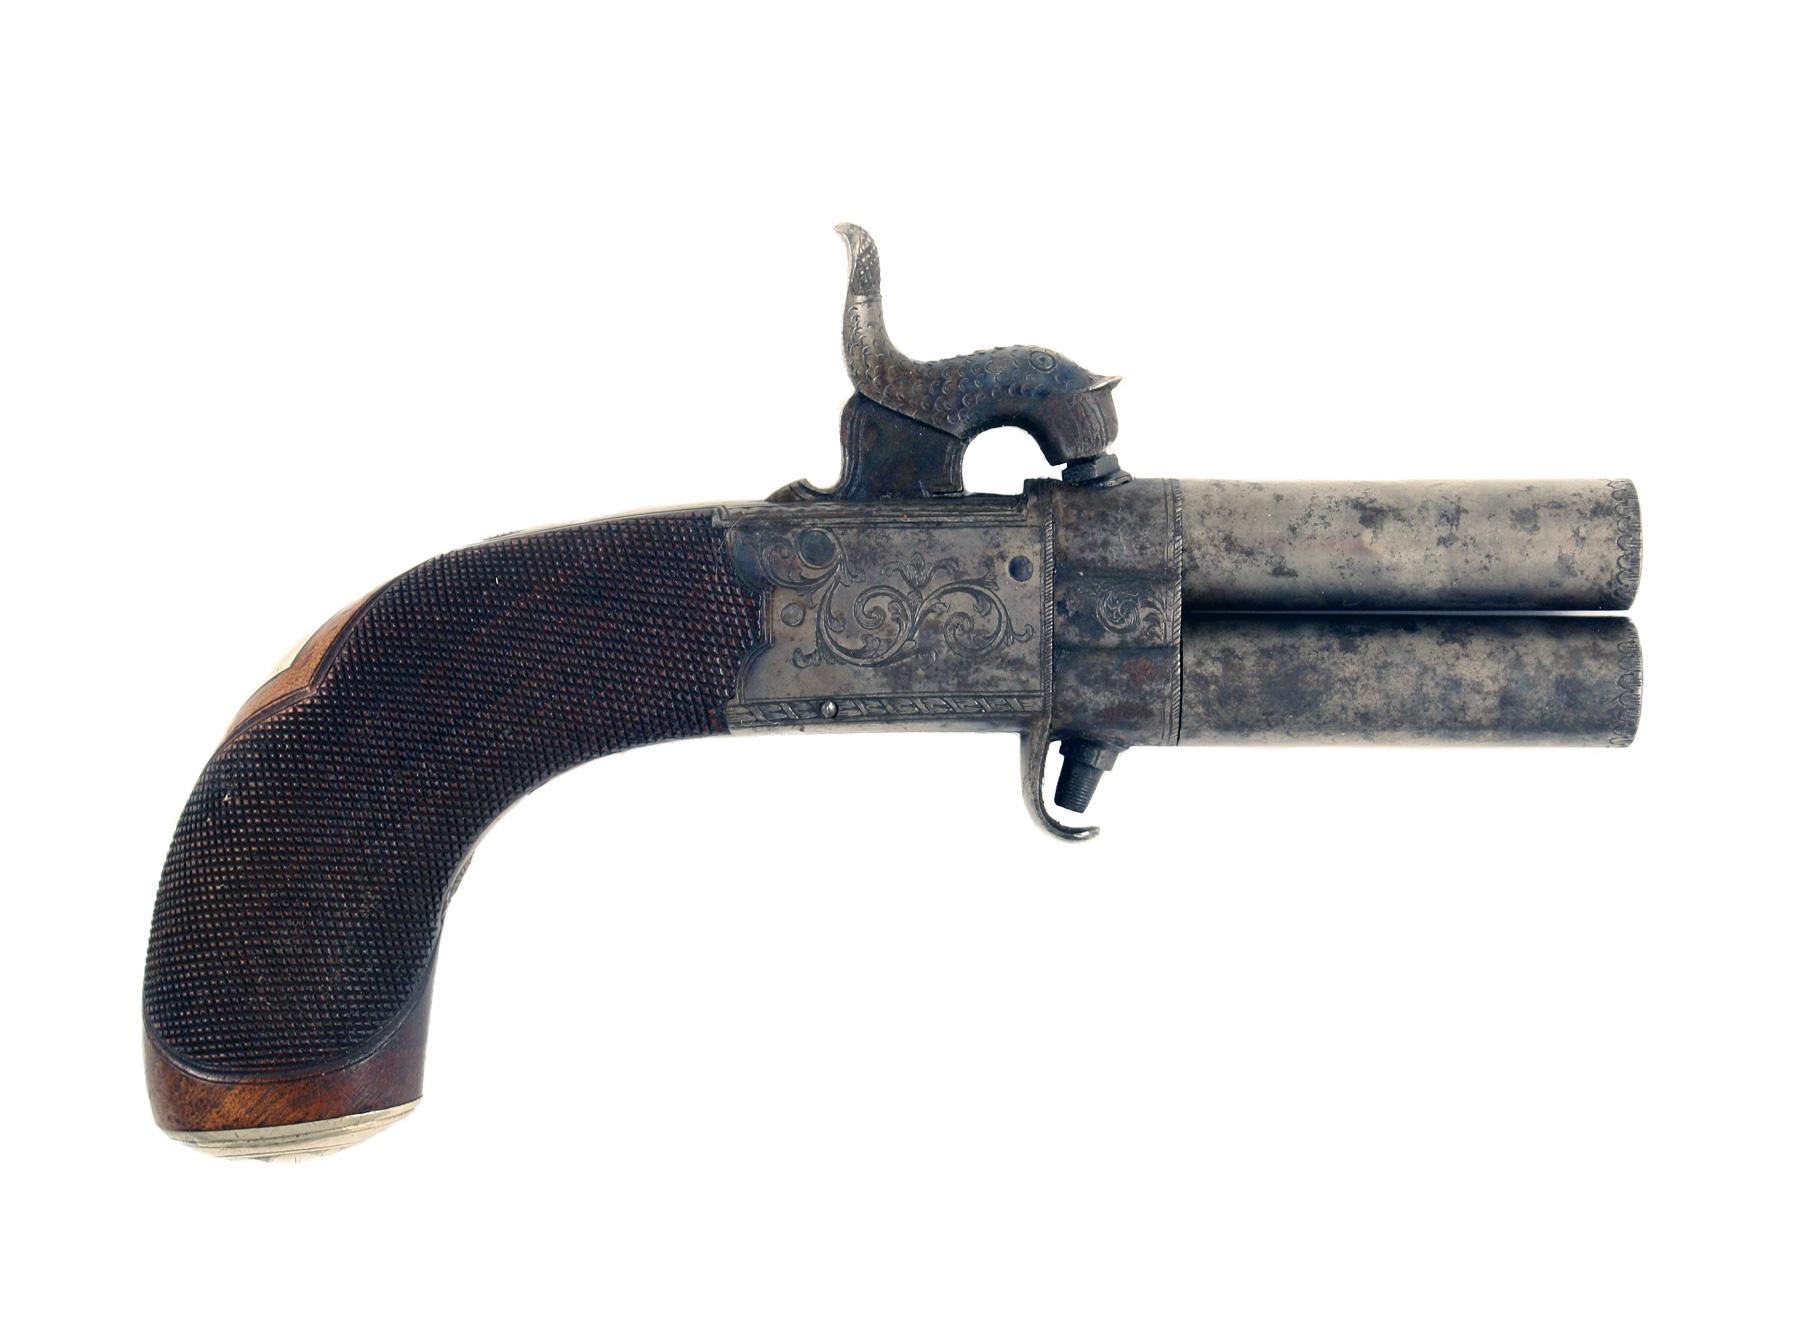 A Turn-Over Pistol